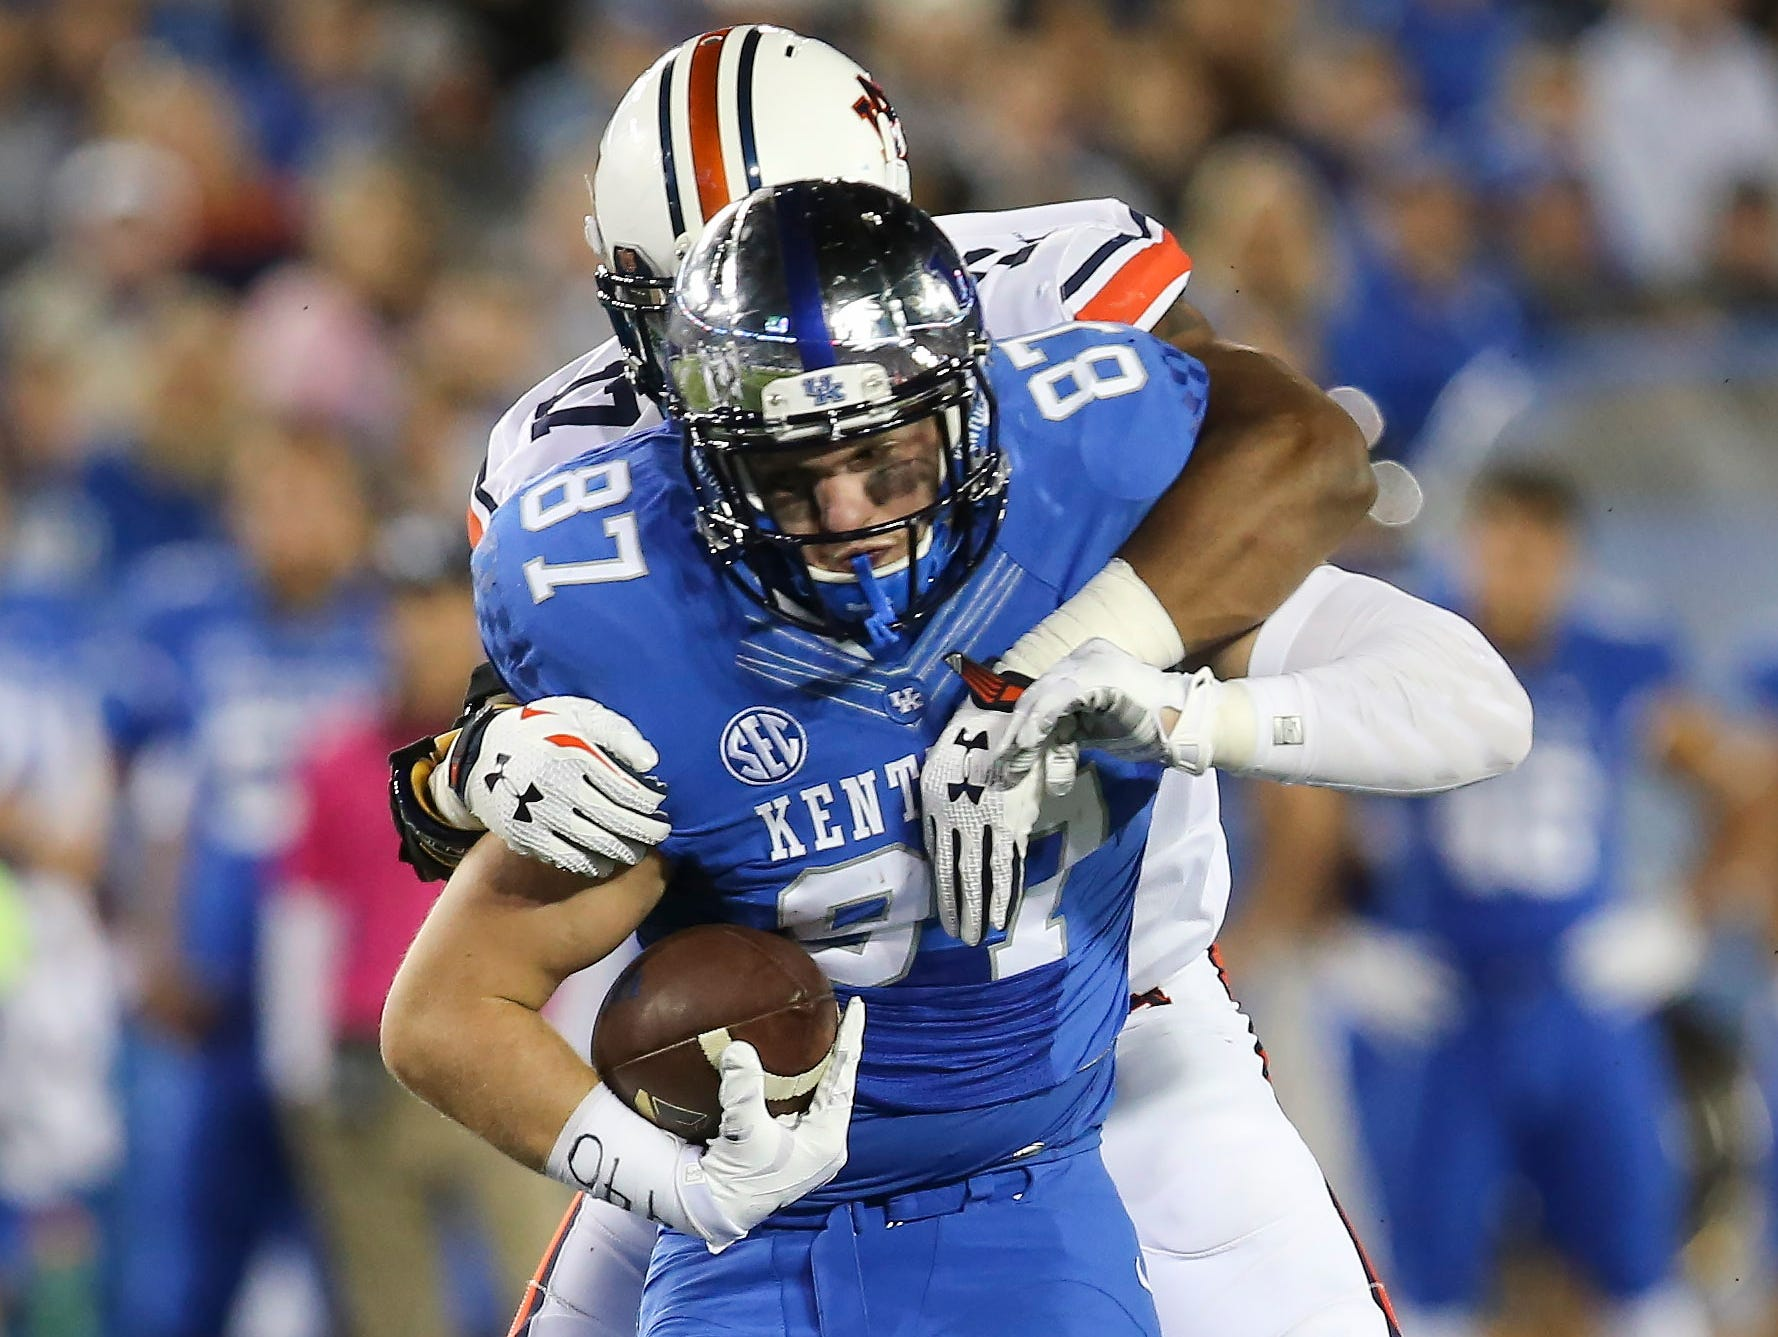 Kentucky tight end C.J. Conrad is tackled by Auburn linebacker Kris Frost during the second half of an NCAA college football game Thursday, Oct. 15, 2015, in Lexington, Ky. Auburn won the game 30-27. Auburn defensive back Johnathan Ford is at bottom.